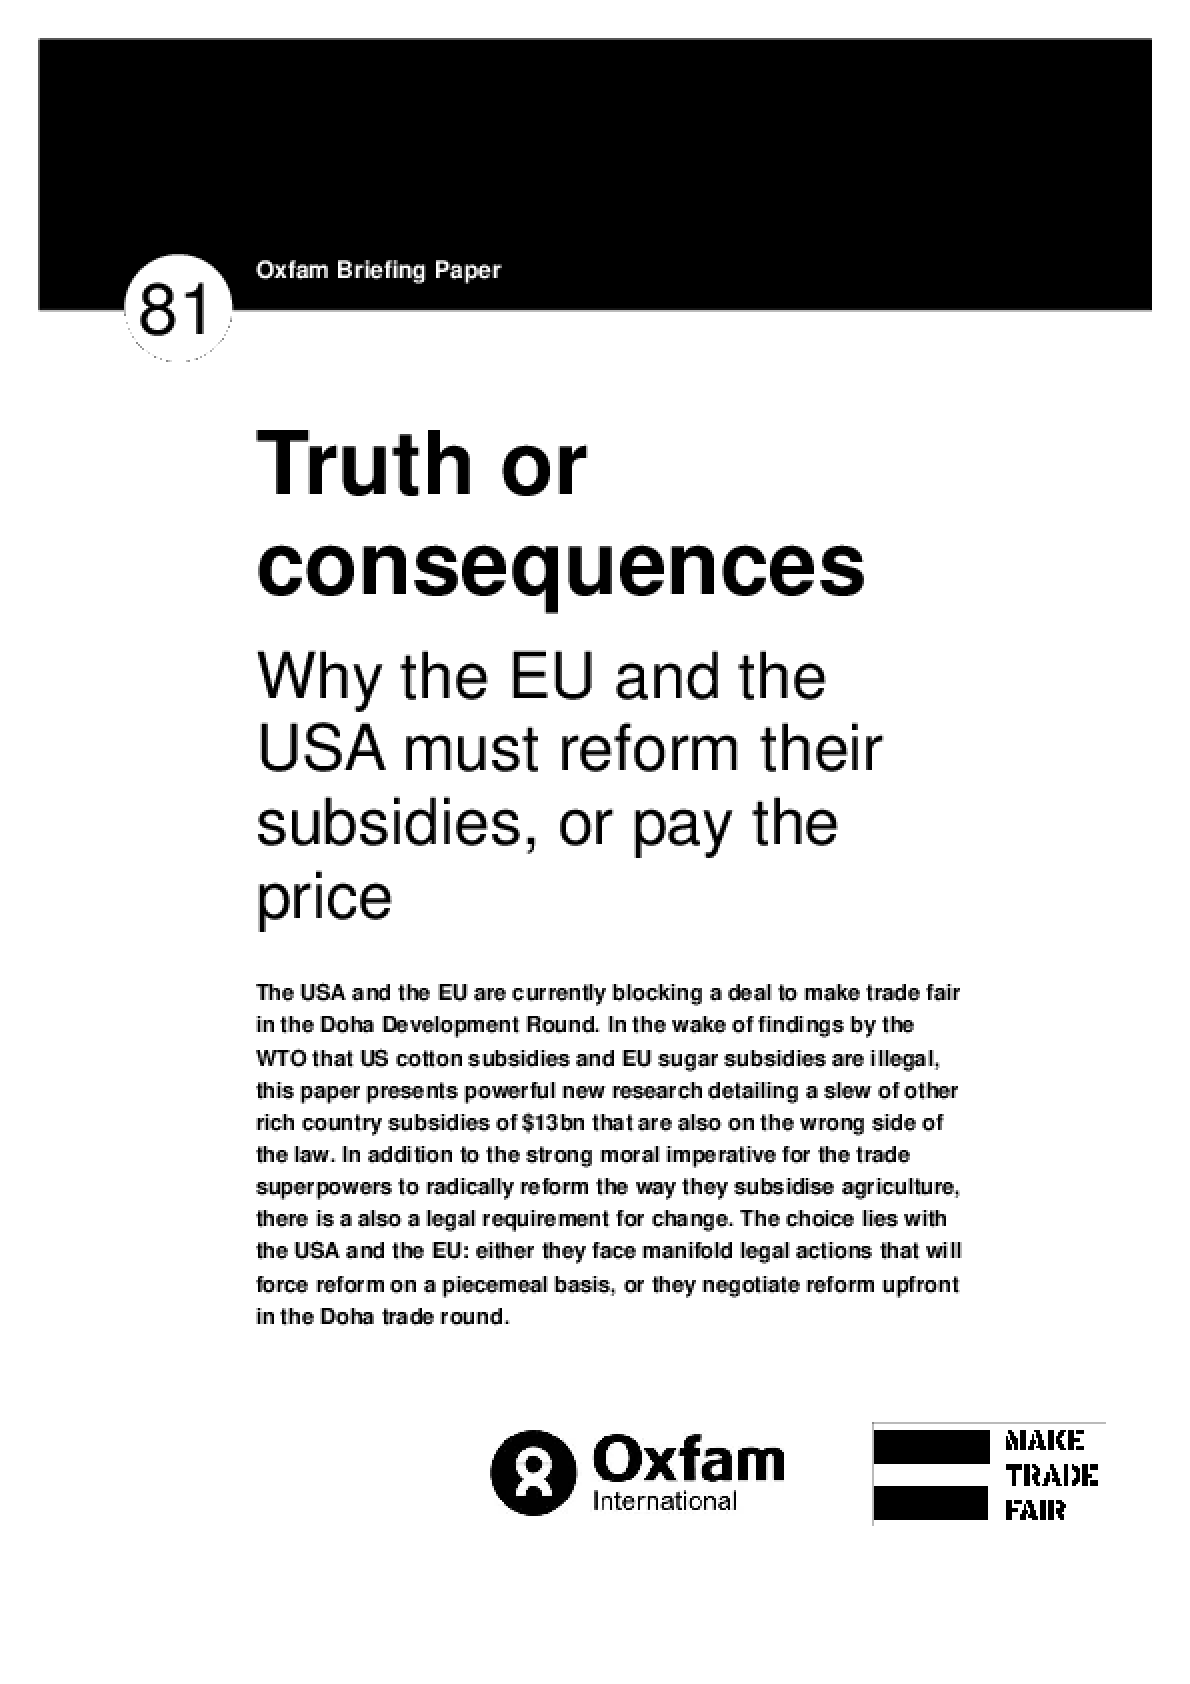 Truth or Consequences: Why the EU and the USA Must Reform Their Subsidies, or Pay the Price